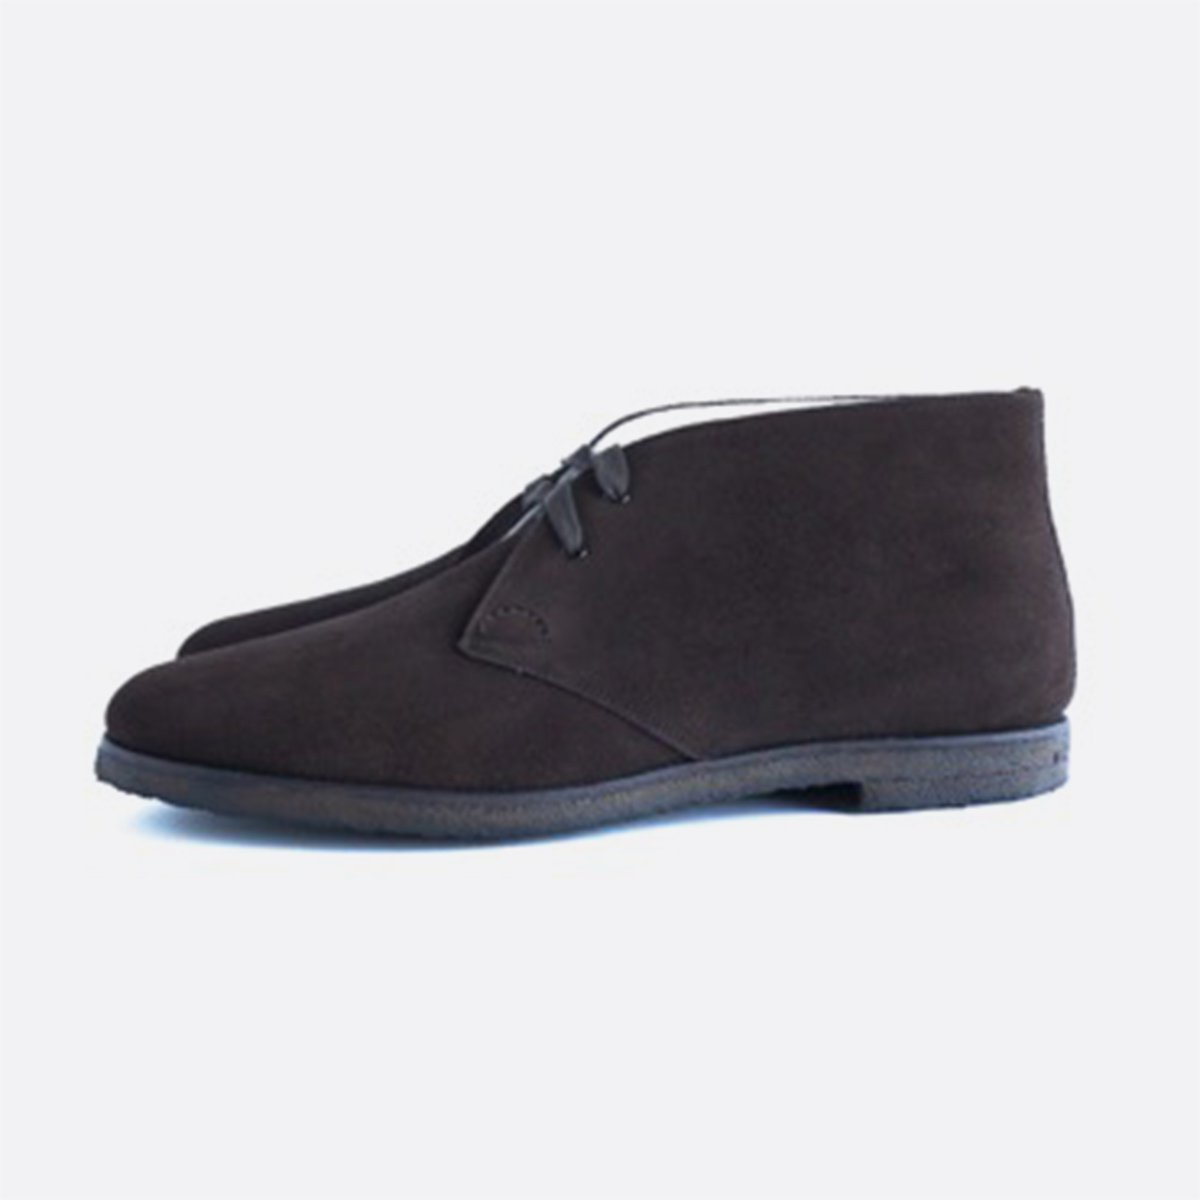 FOOTSTOCK ORIGINALS CHUKKA BOOTS  (DARK BROWN SUEDE)